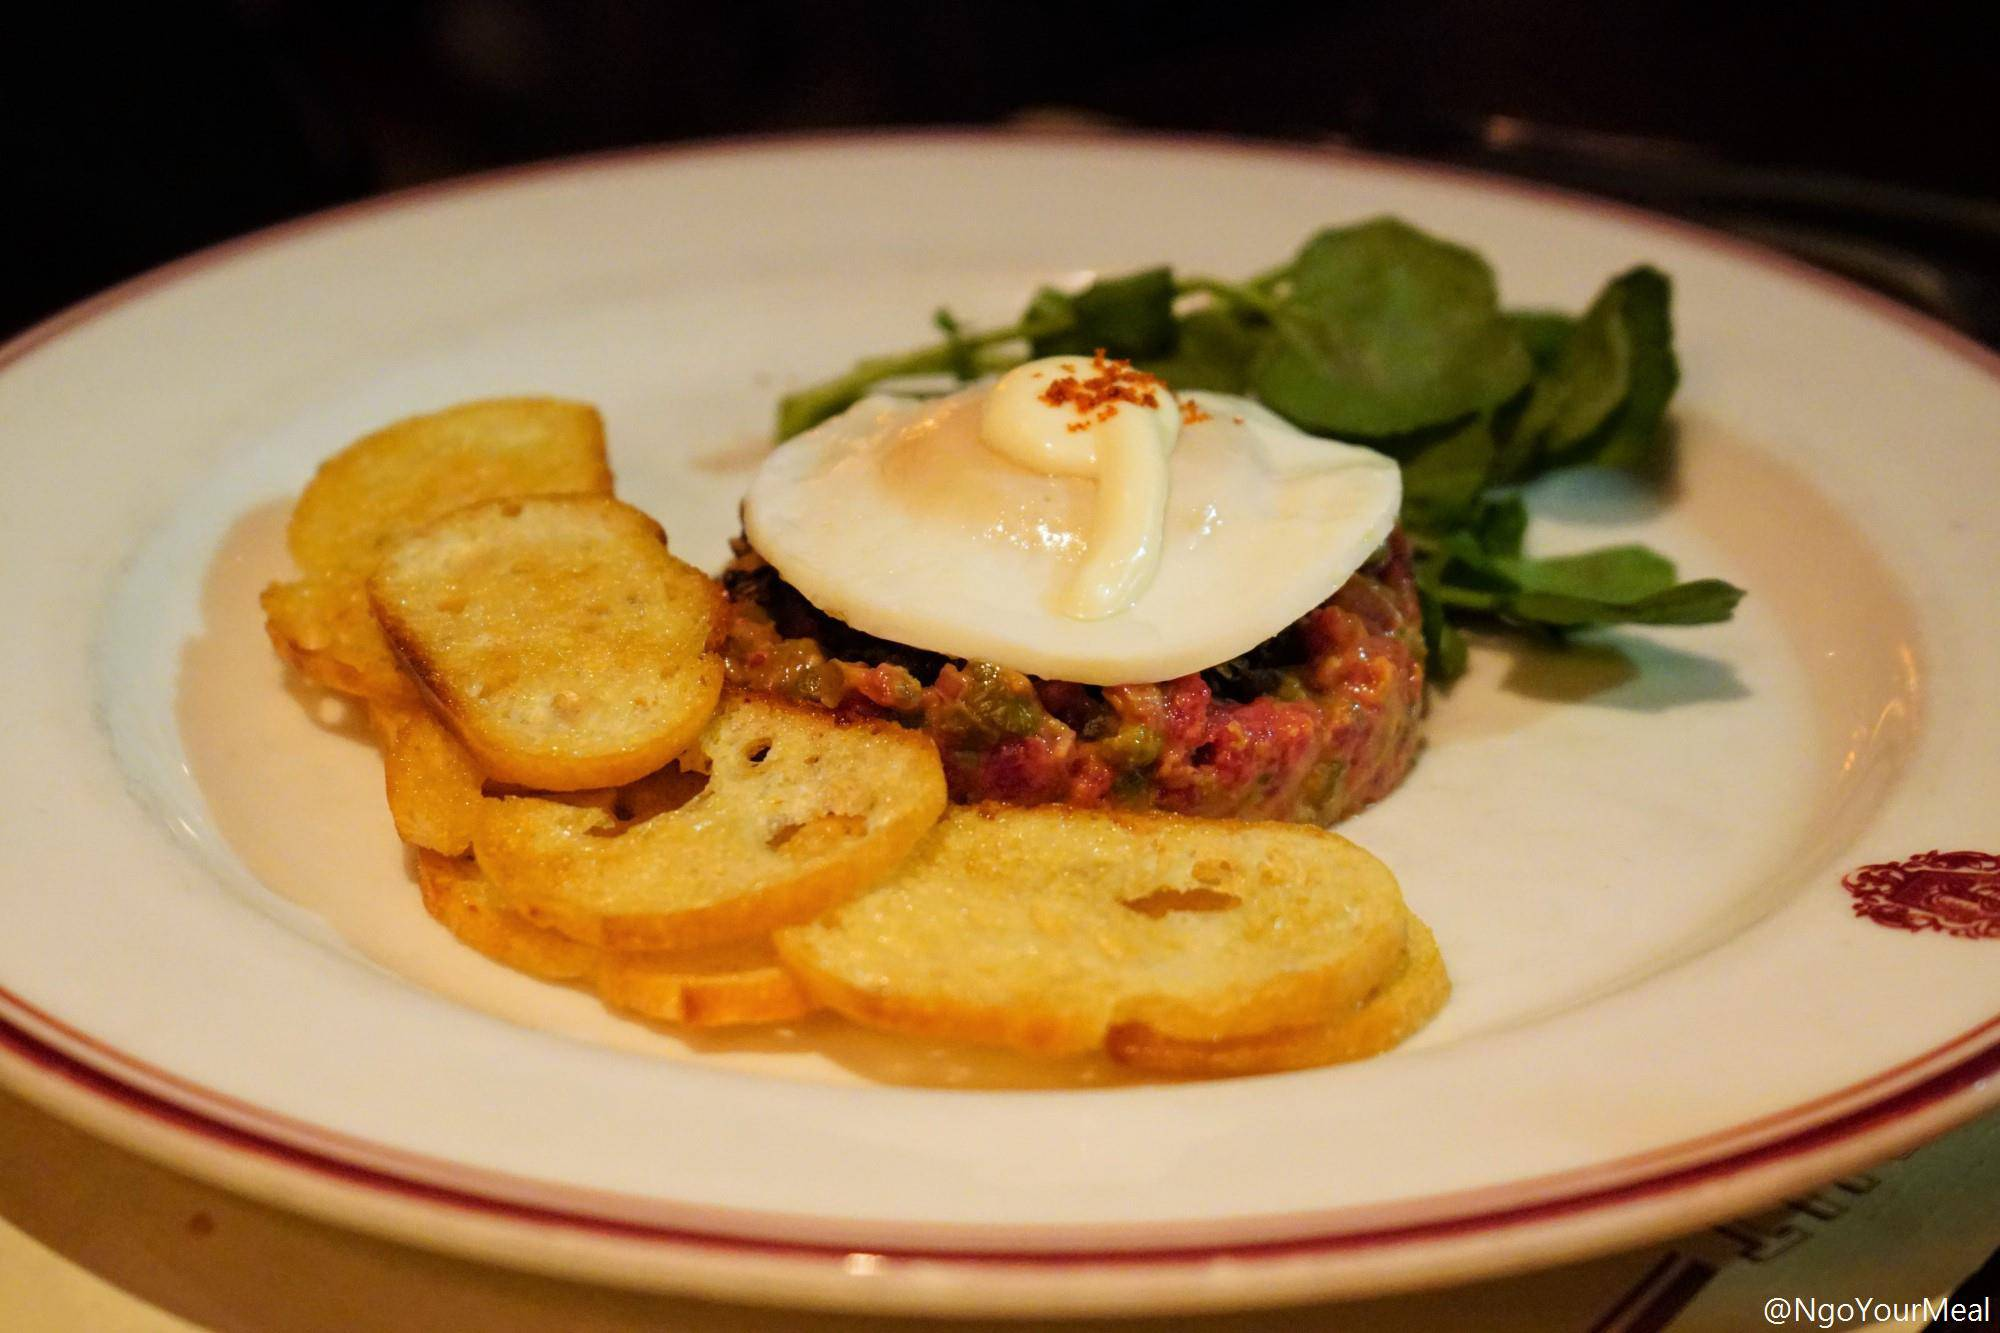 Steak Tartare with Mushroom Duxelles, Croutons, Aioli at Gaslight in Boston